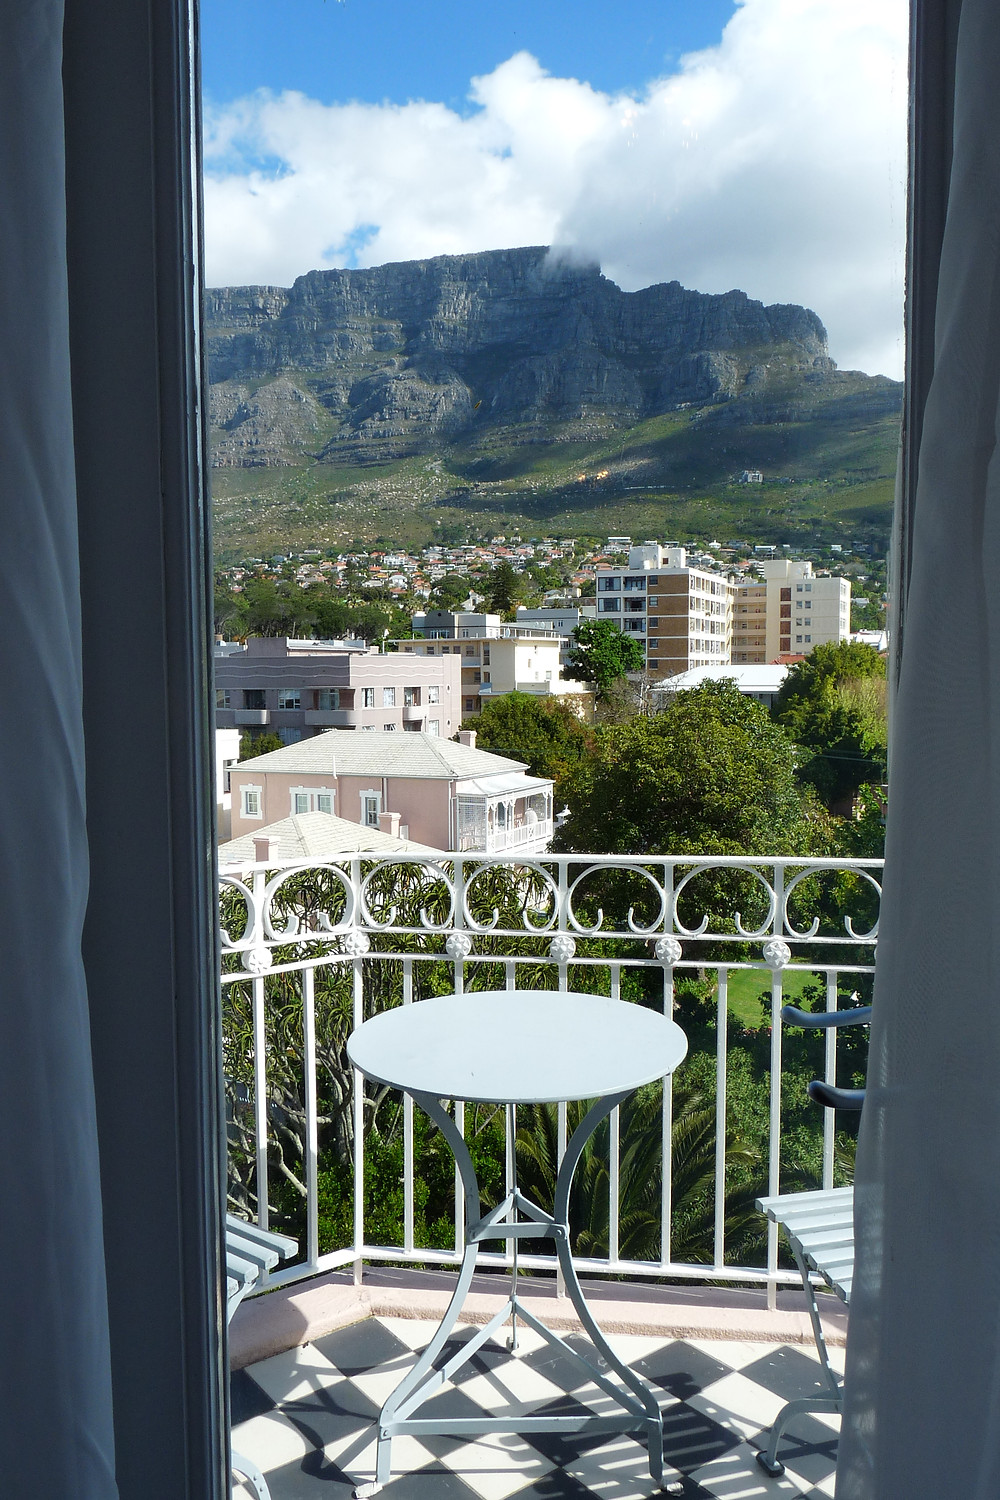 Table Mountain as seen from the Belmond Mount Nelson